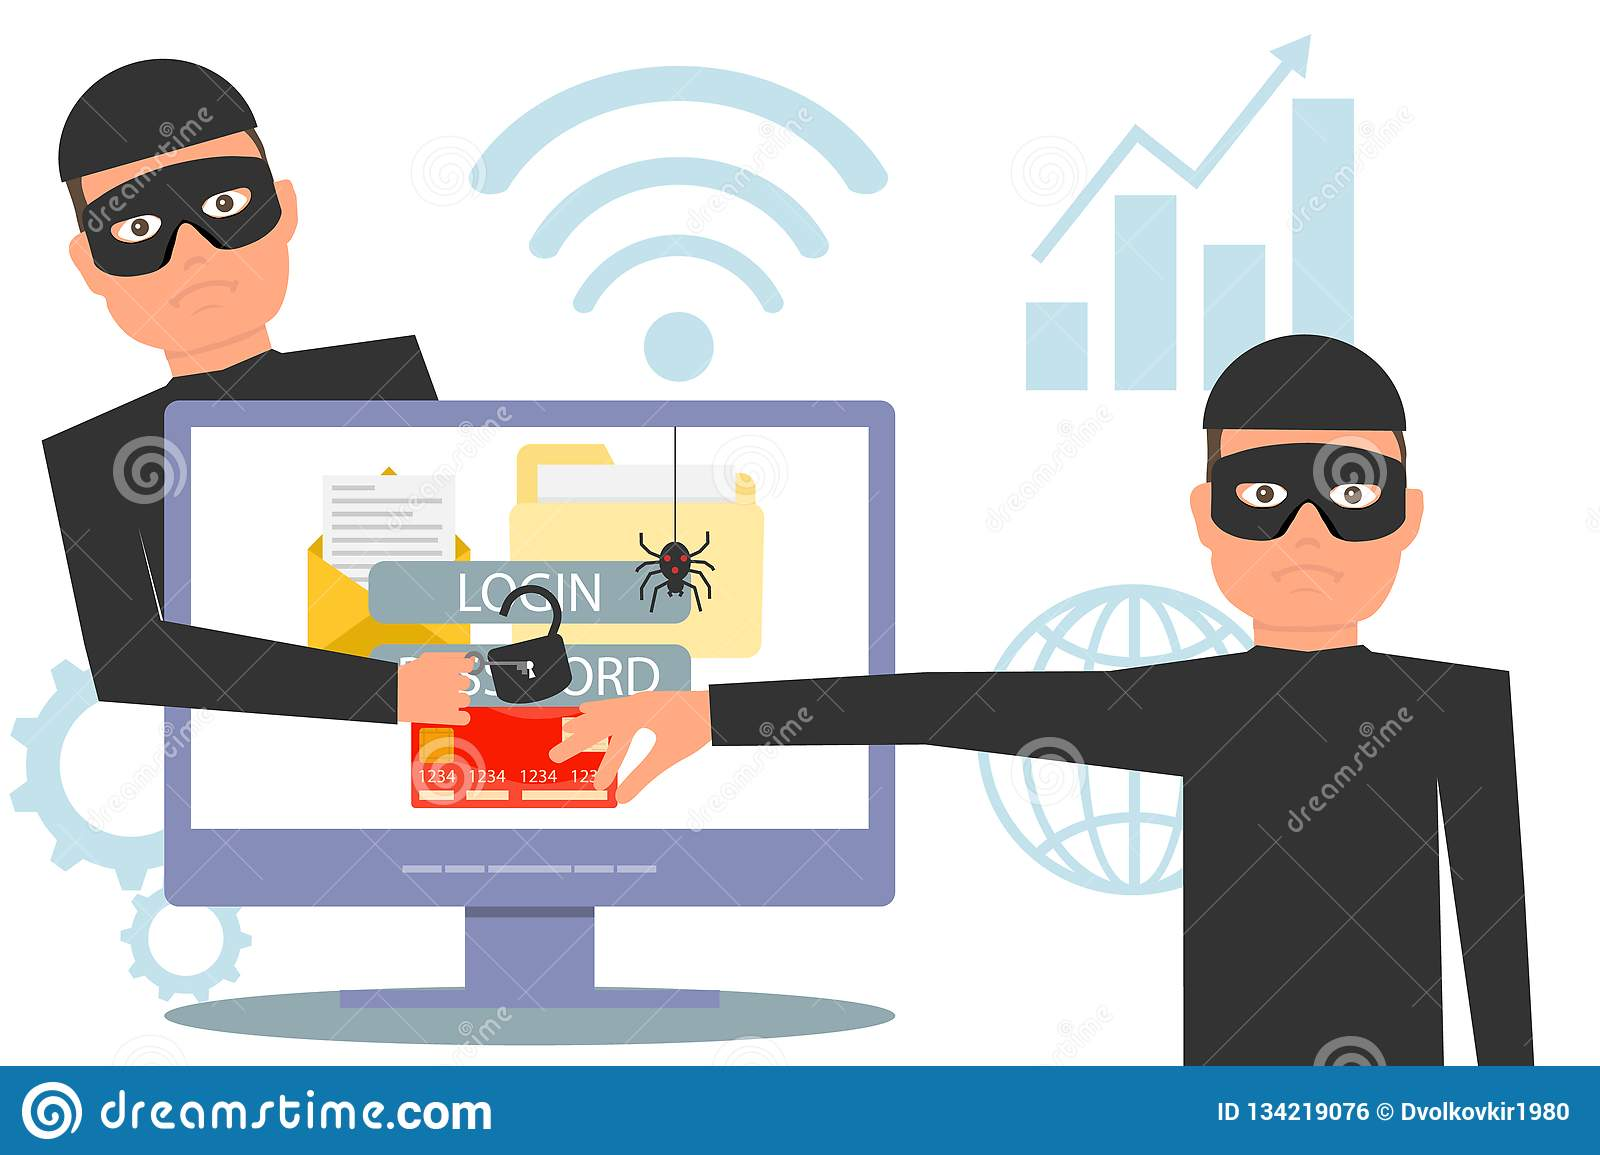 Hackers steal information. Hacker stealing money and personal information. Hacker unlock information, steal and crime computer dat